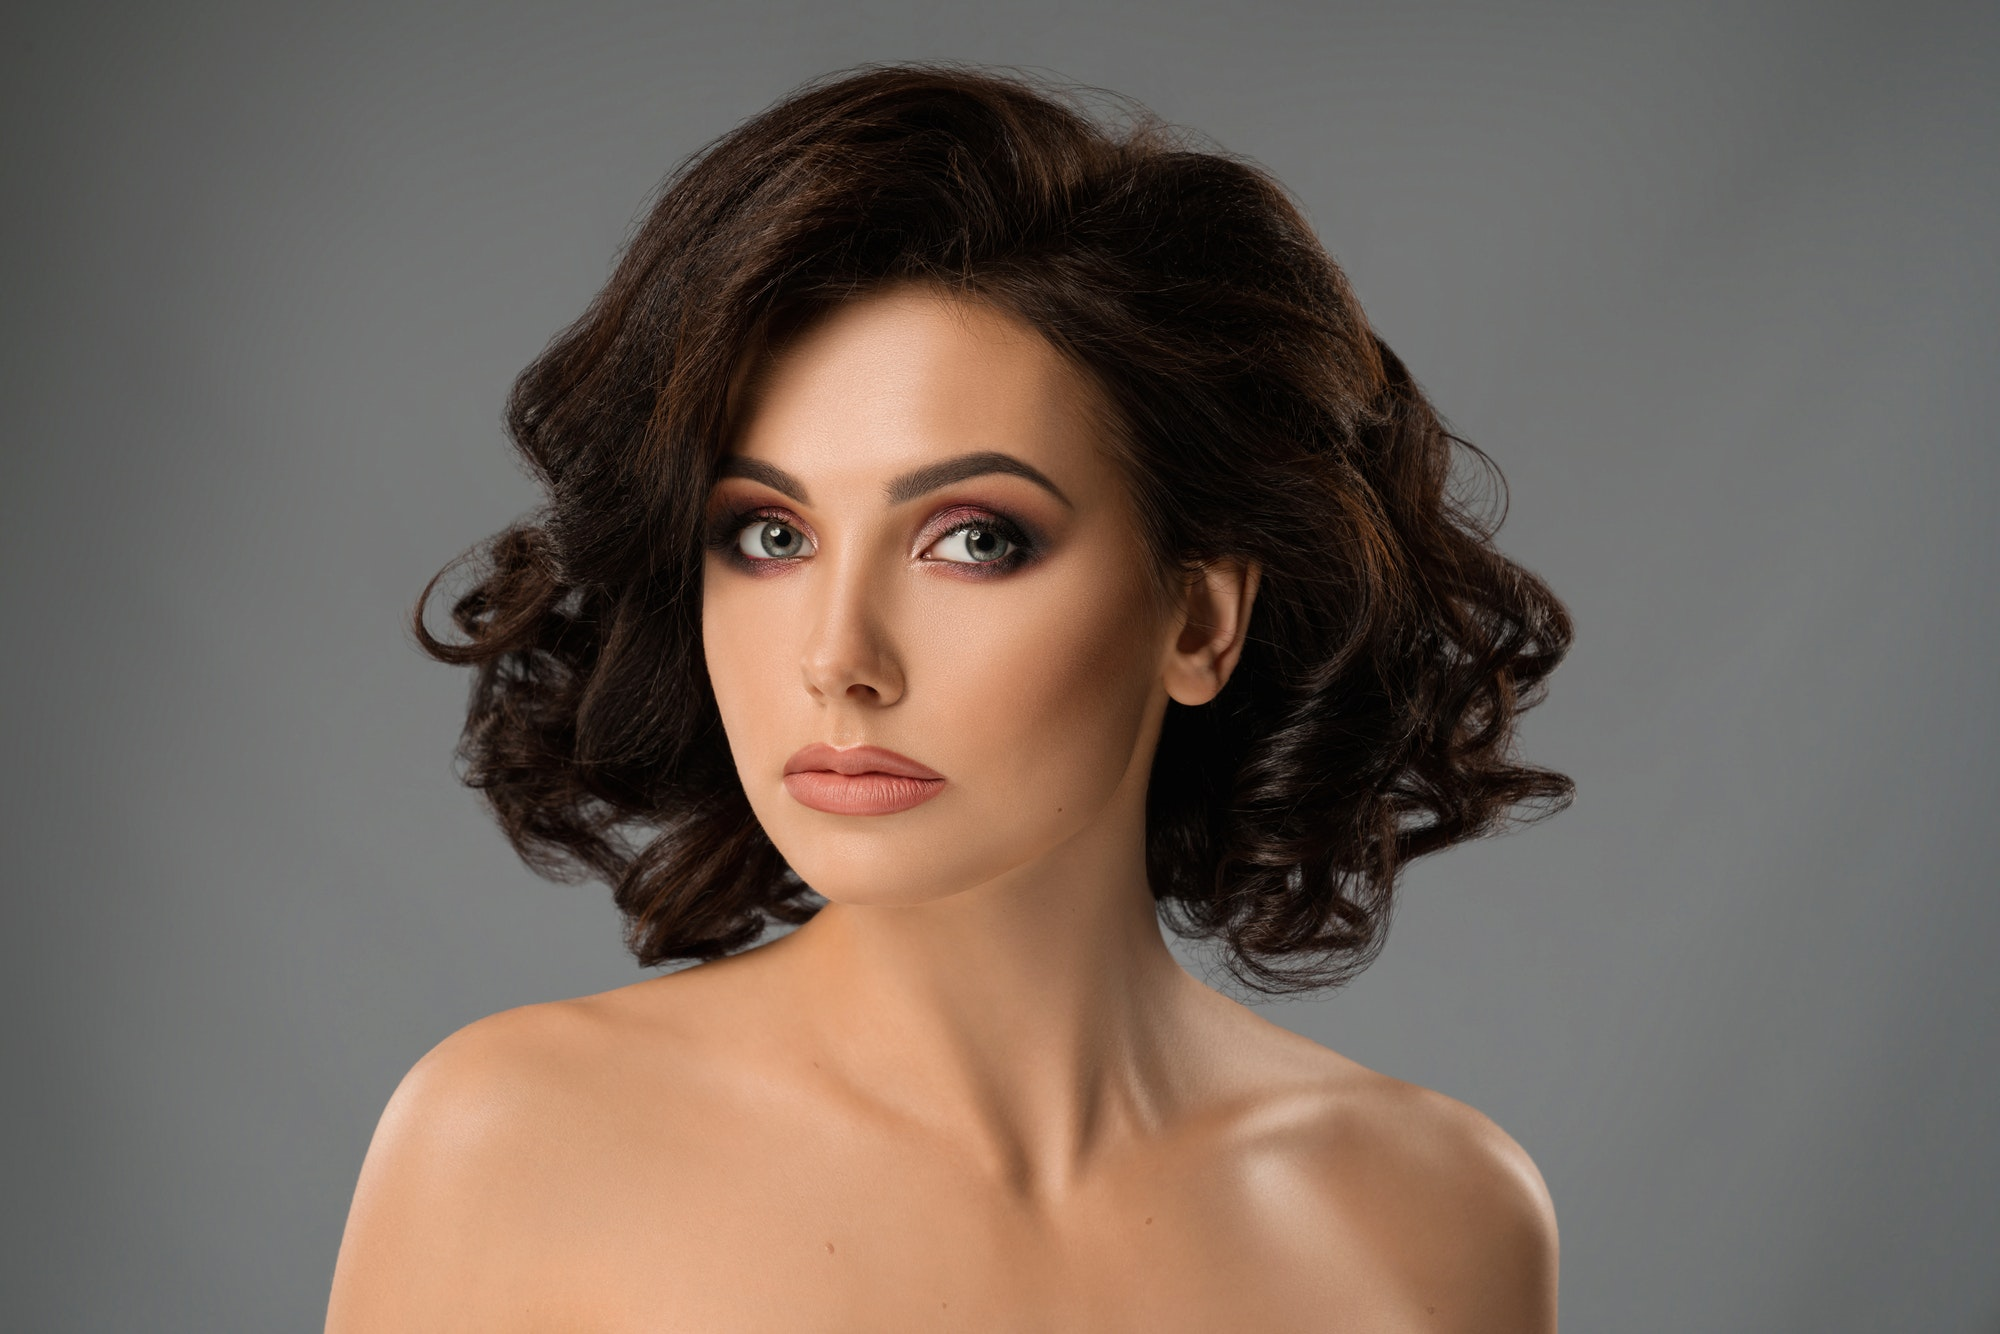 Beautiful brunette with stylish make up looking at camera